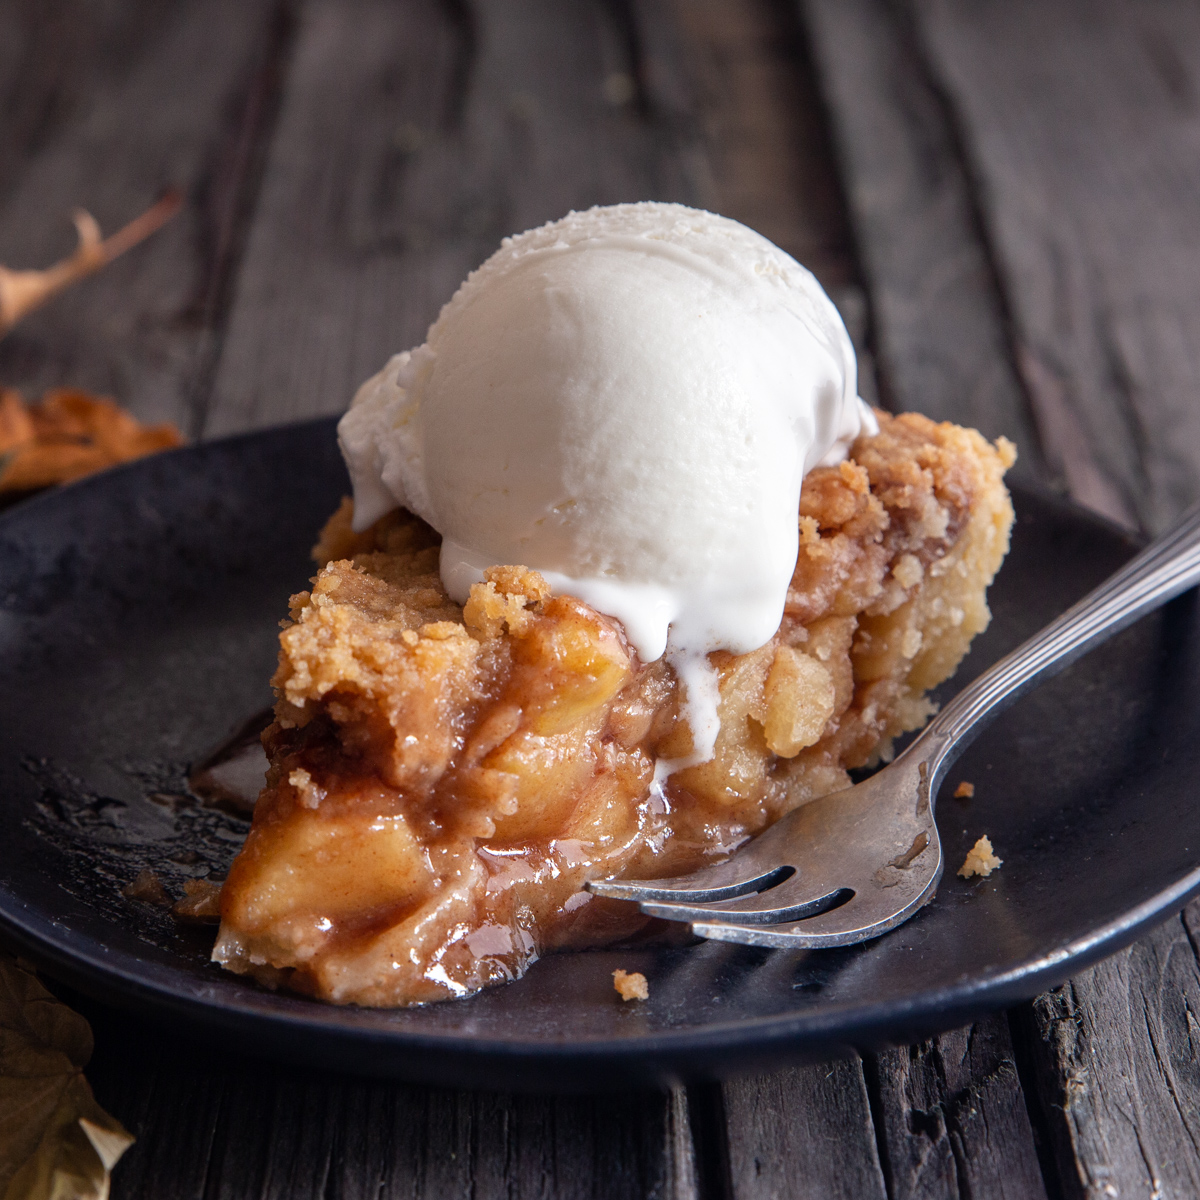 a slice of apple pie with ice cream on a black plate